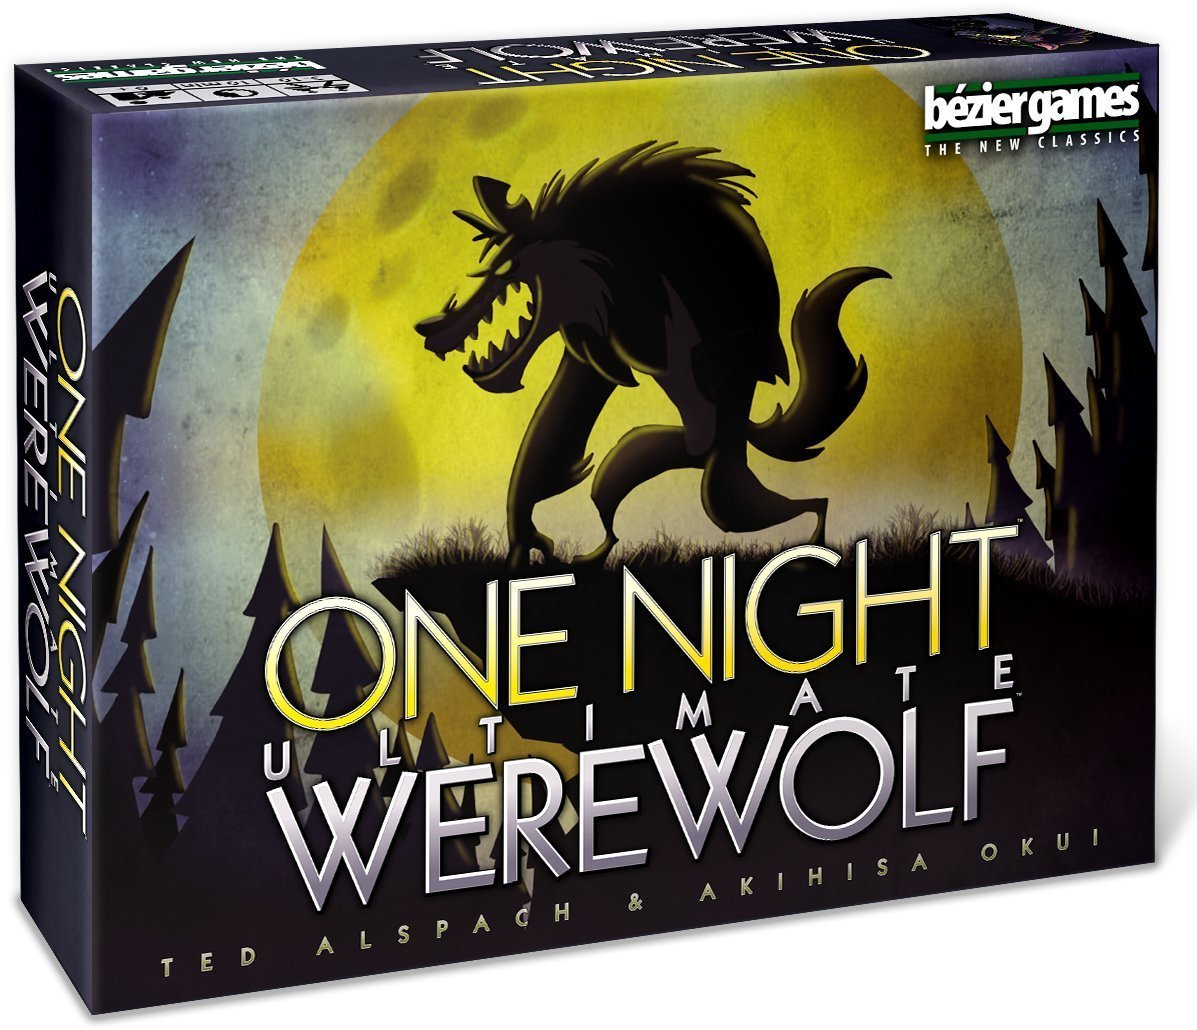 One Night: Ultimate Werewolf